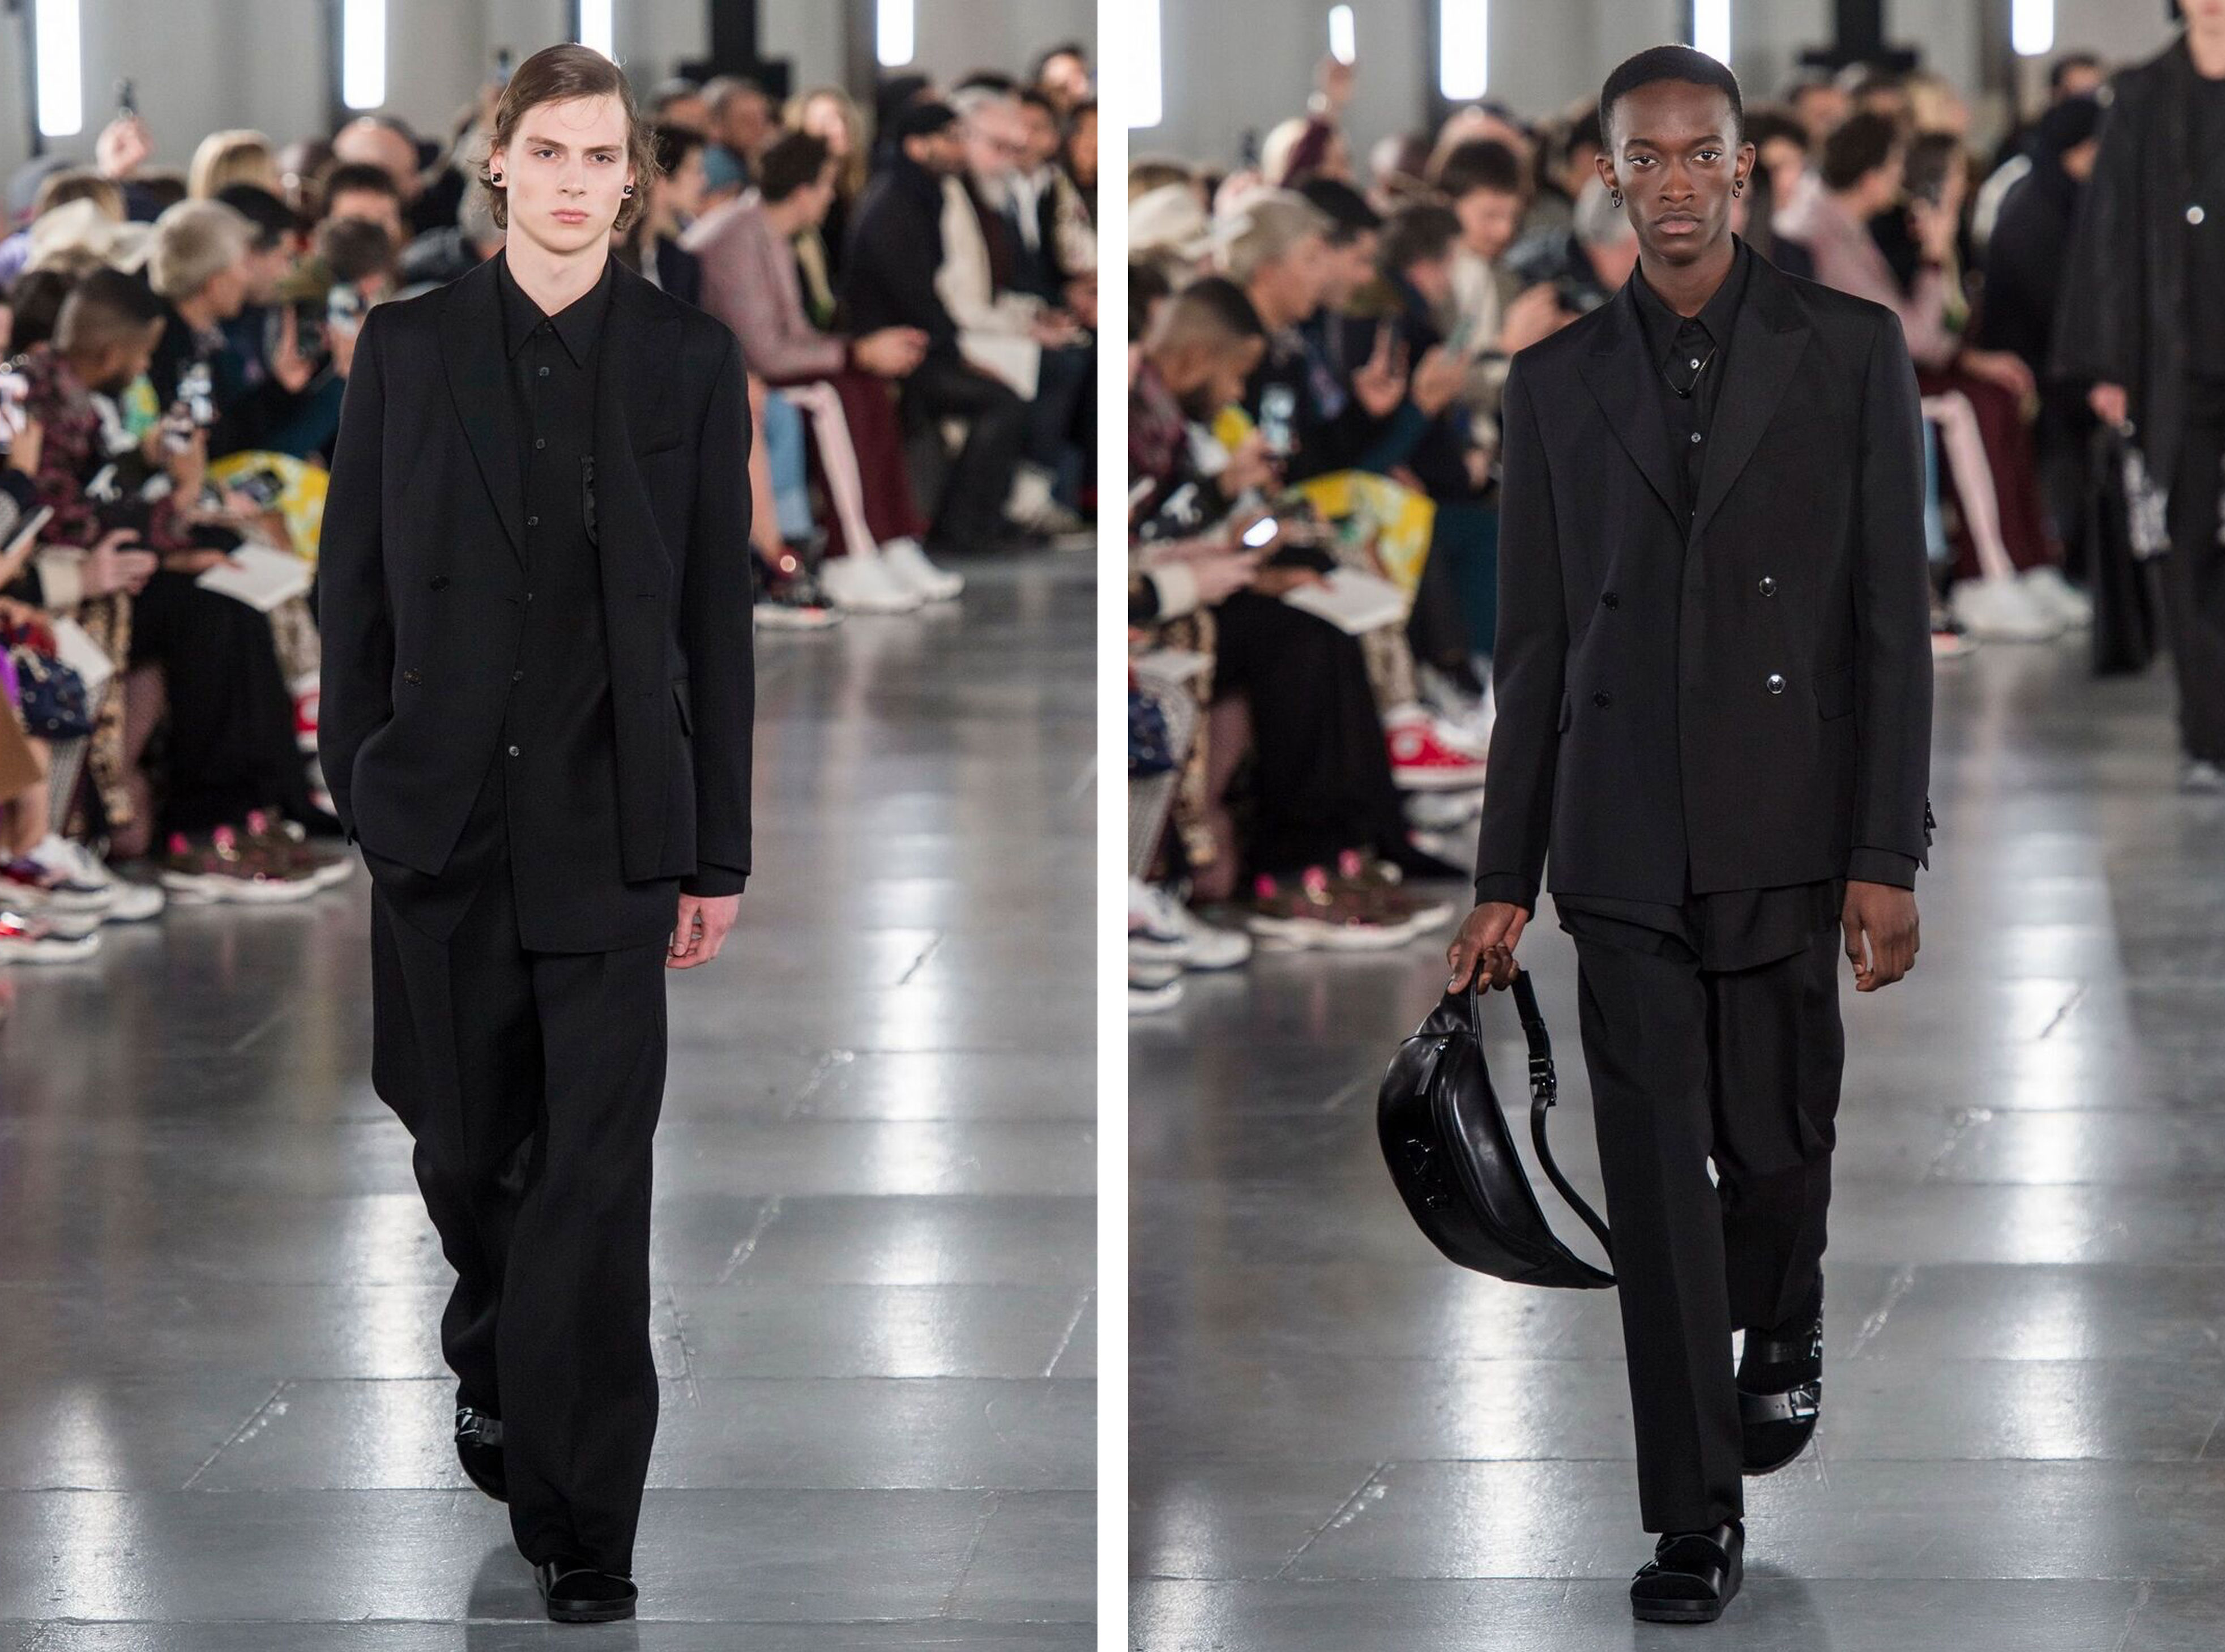 b88225dc7d231 valentino menswear autumn winter 19